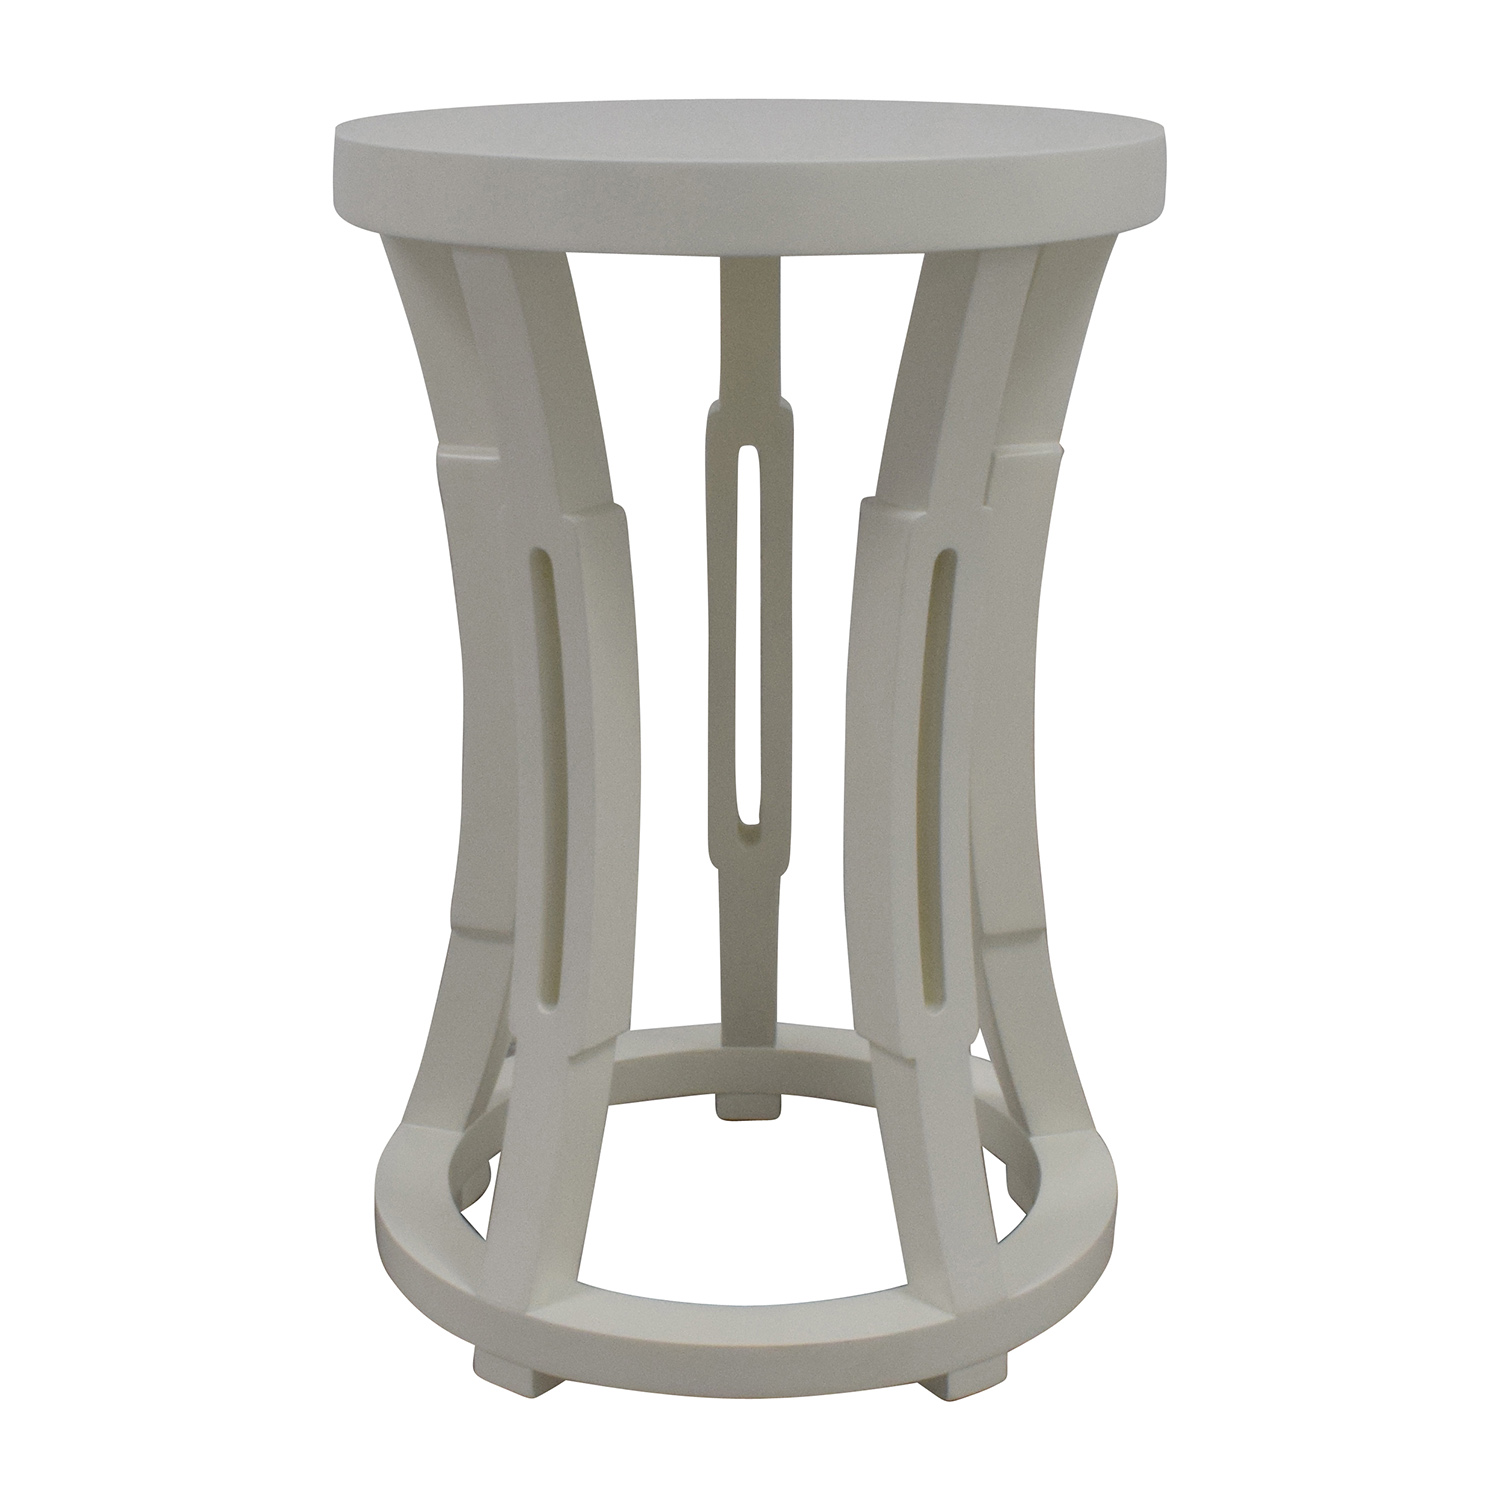 shop Bungalow 5 Bungalow 5 Hour Glass Stool Side Table or Stool online